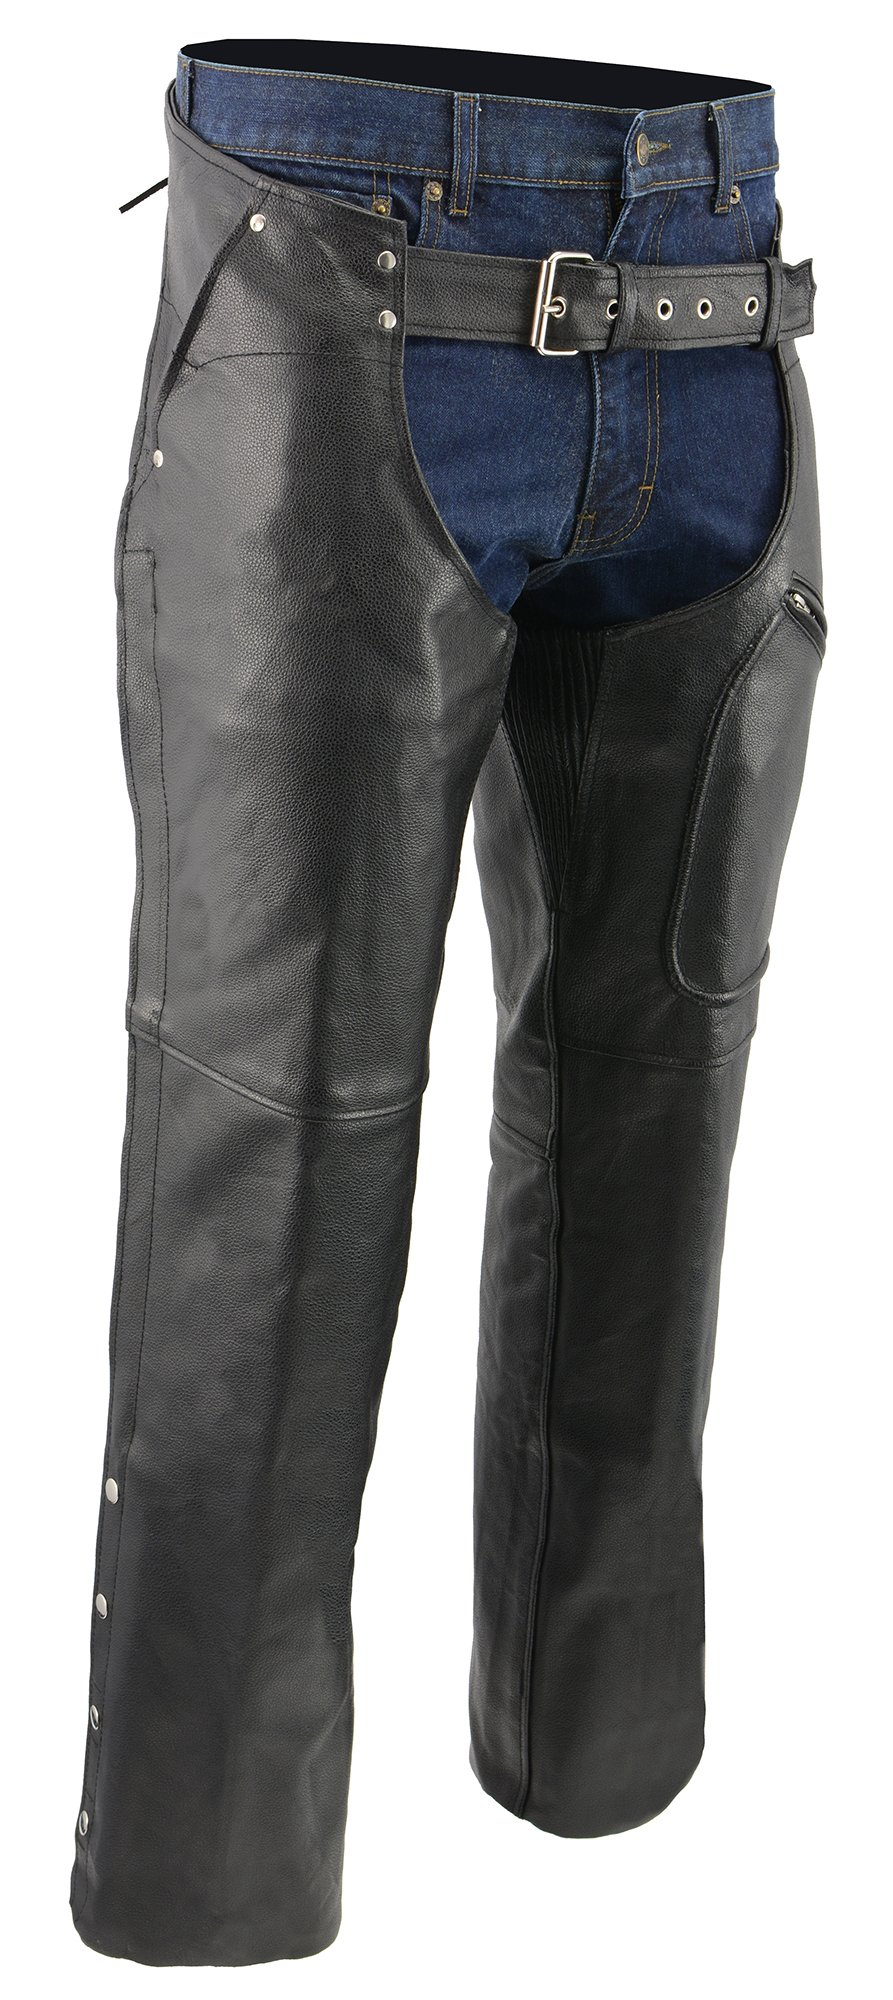 M-BOSS MOTORCYCLE APPAREL-BOS15509-BLACK-Men's zip-out insulated pant style zipper pocket leather chaps.-BLACK-3X-LARGE